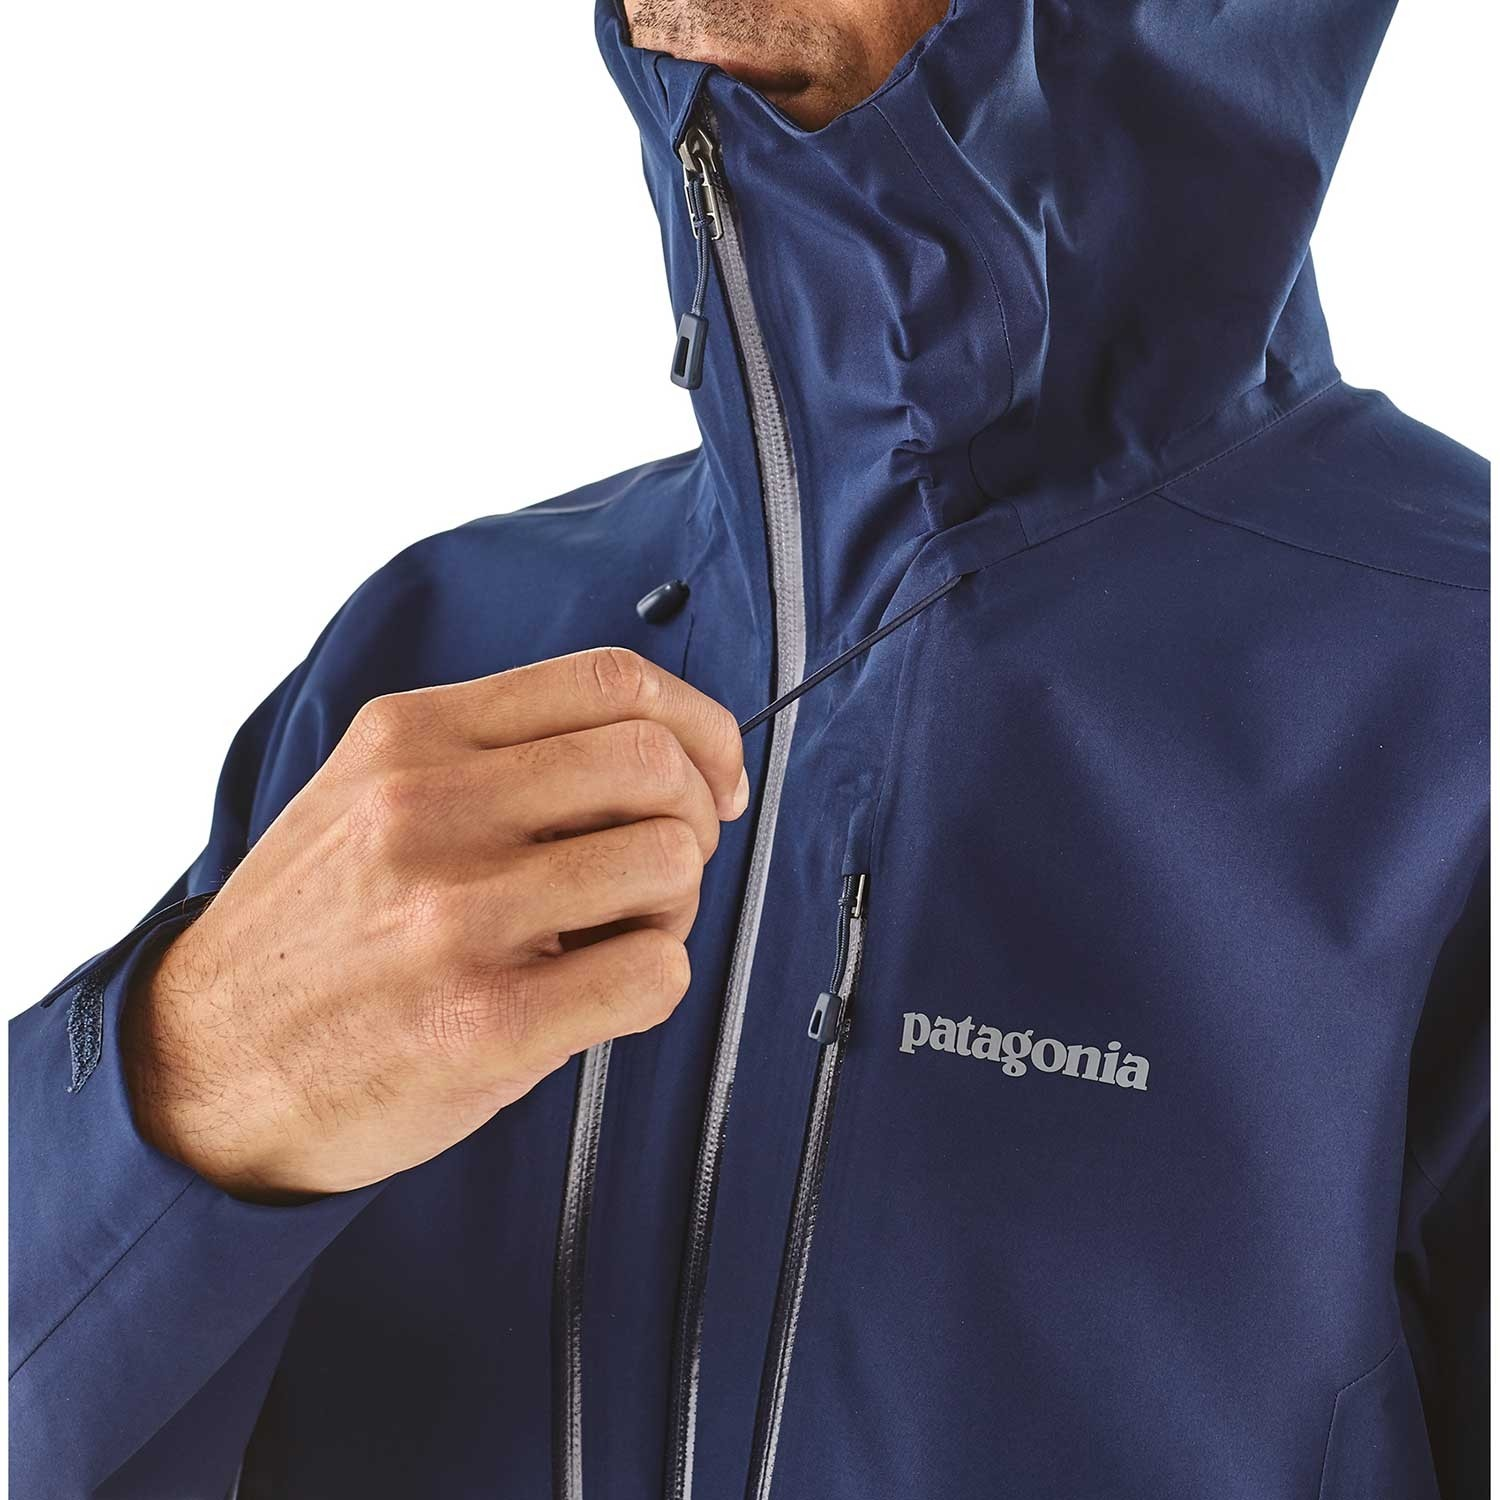 Patagonia Triolet Men's GTX Jacket - Classic Navy